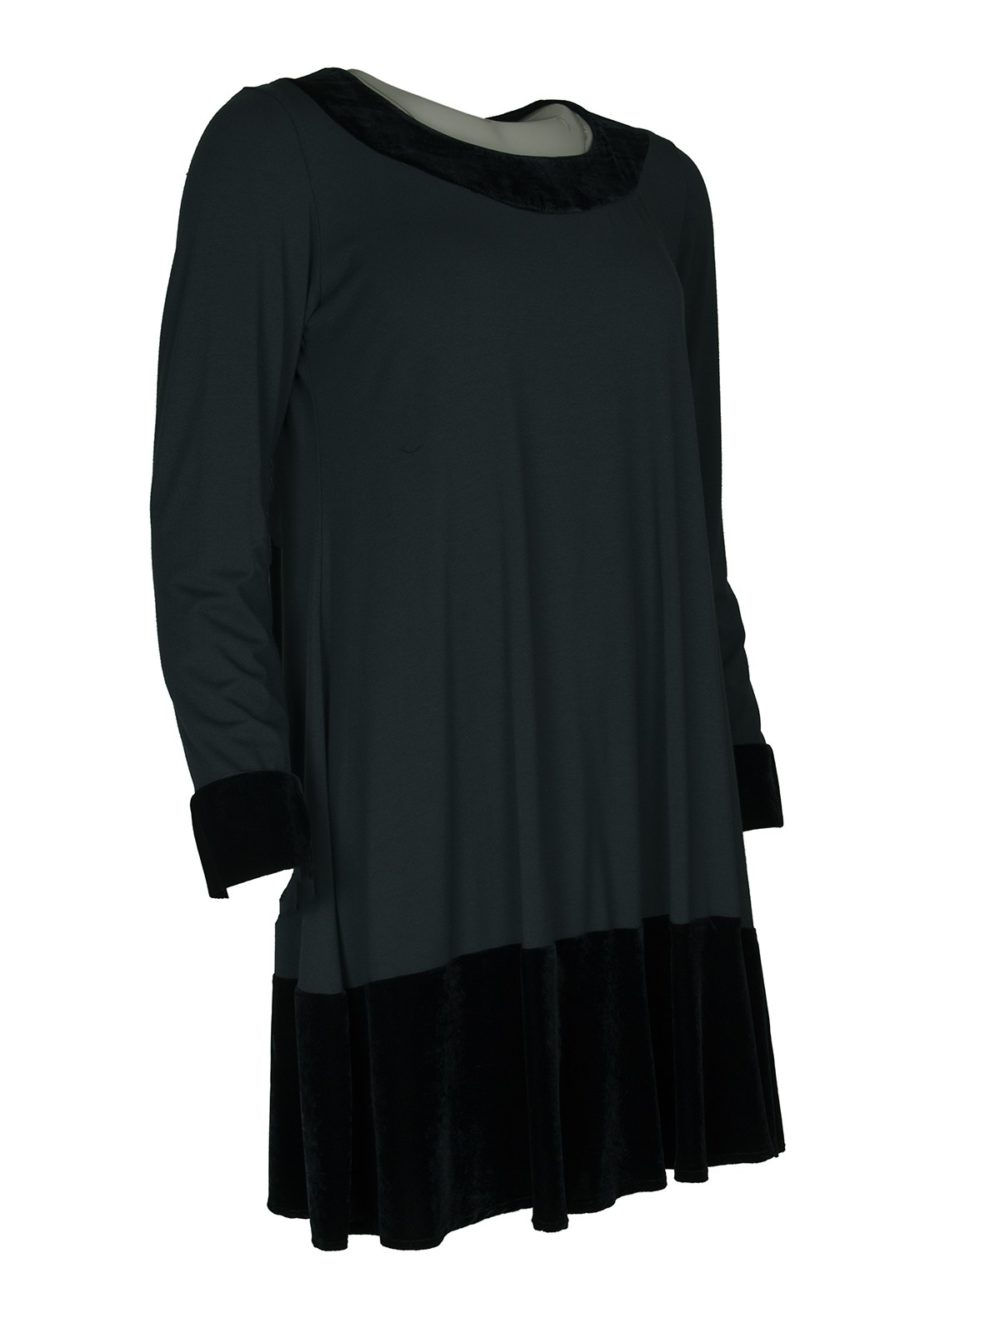 Velvet Trim Tunic Out of Xile Katie Kerr Women's clothing